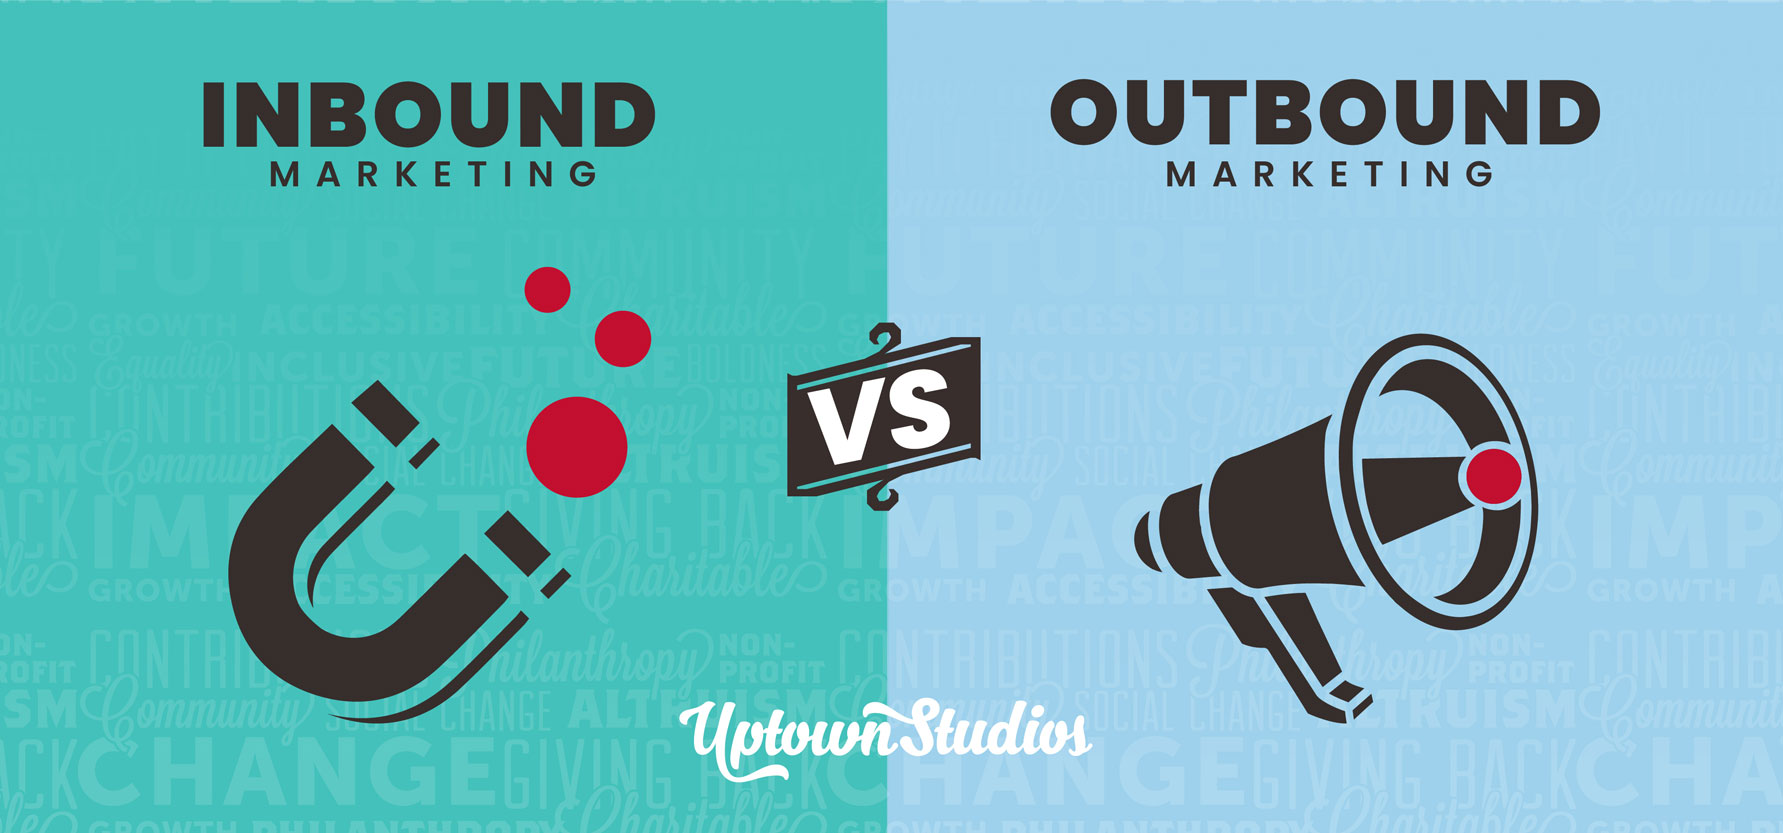 What does Inbound Marketing vs. Outbound Marketing Really Mean? Featured Image